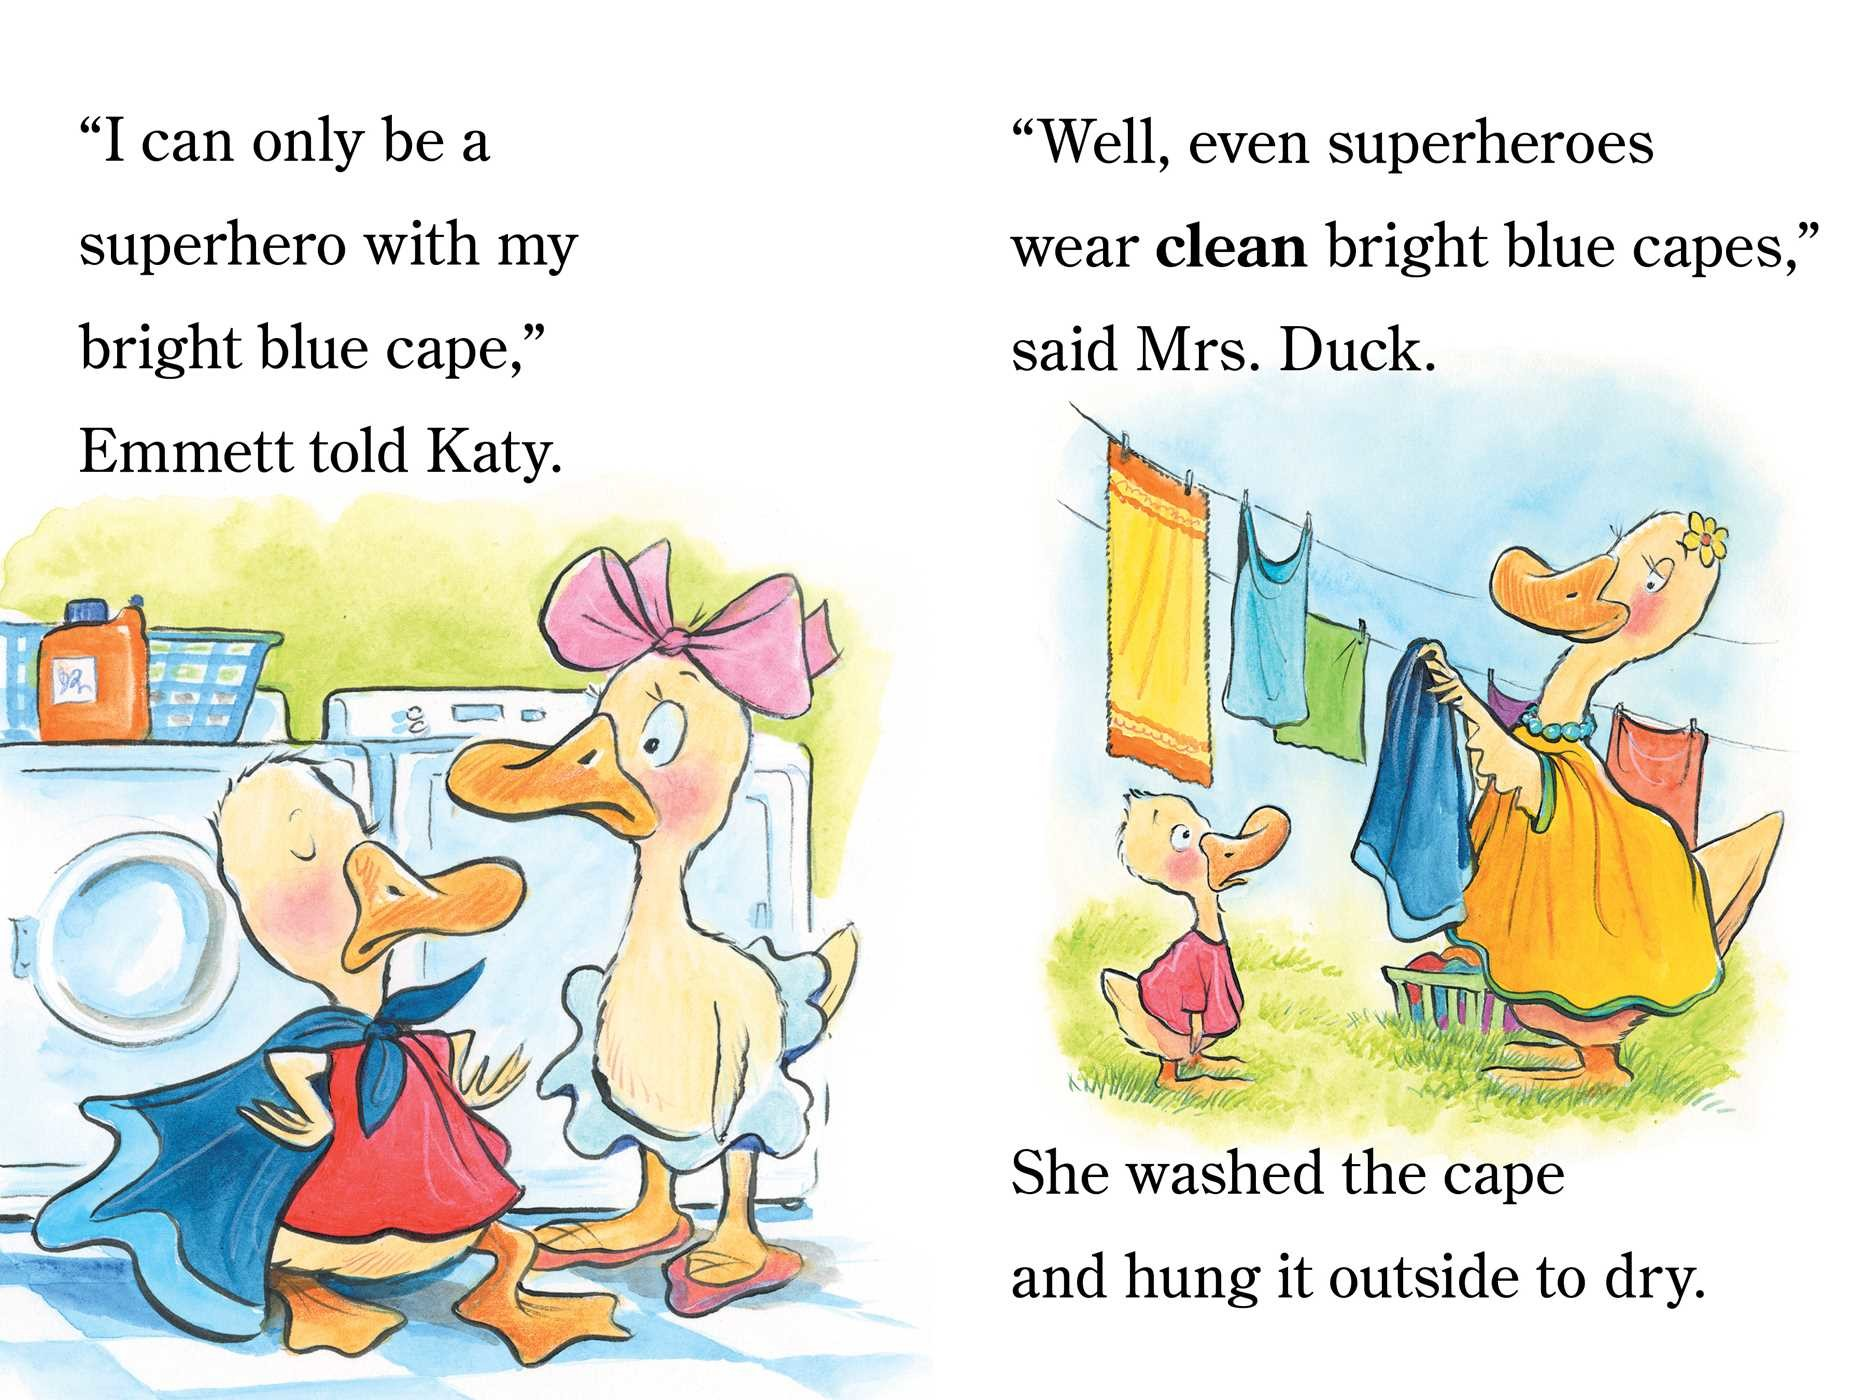 Emmett and the bright blue cape 9781481458696.in05